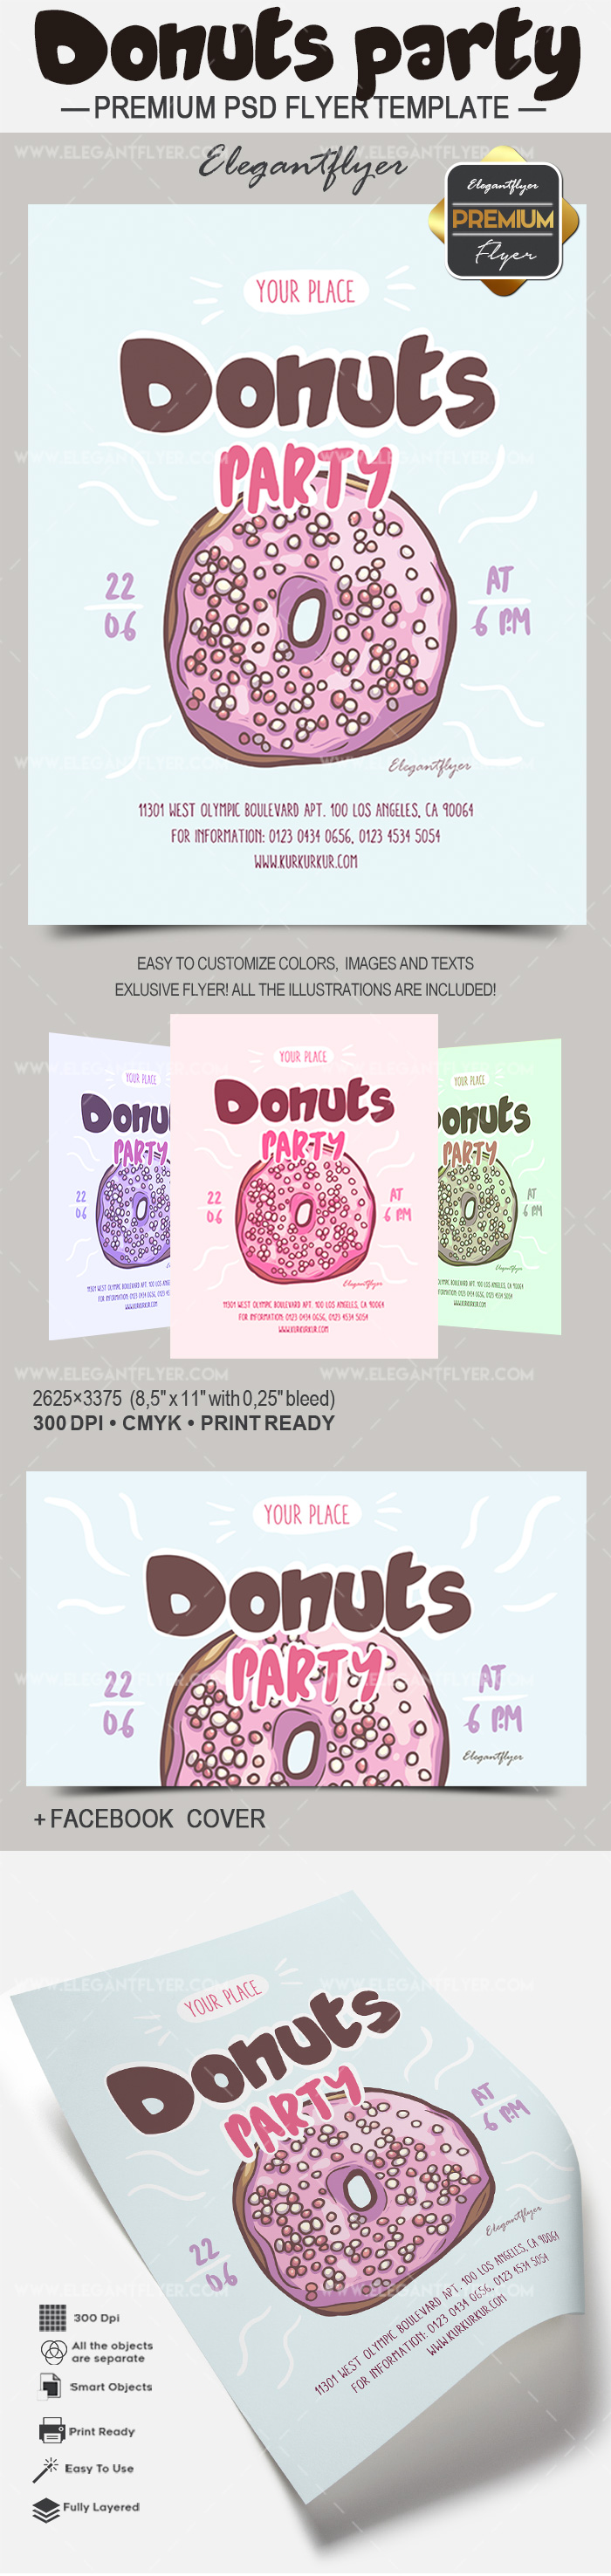 Donuts Party Flyer Template